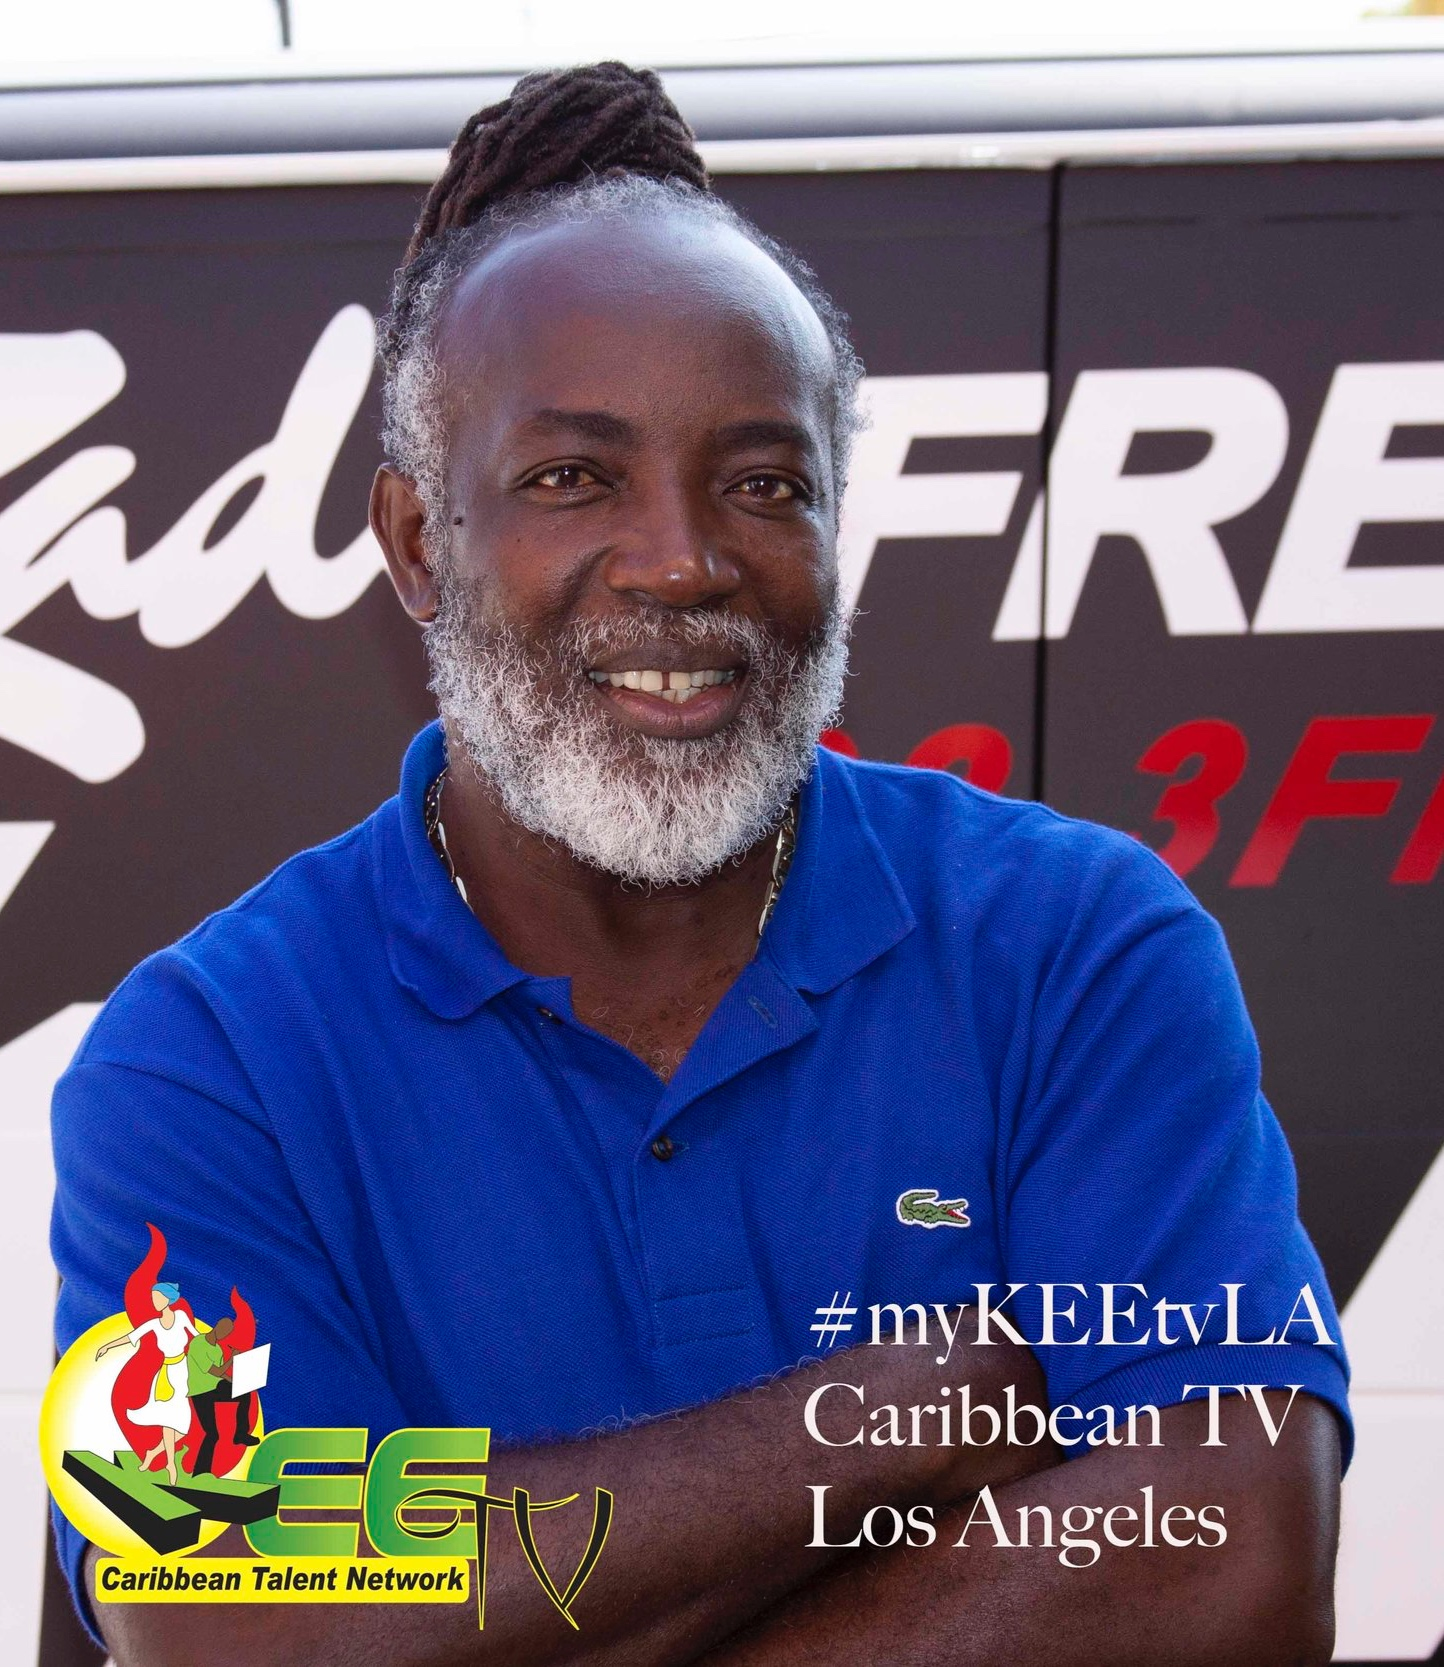 Freddie McGregor, reggae legend and a national treasure of Jamaica.